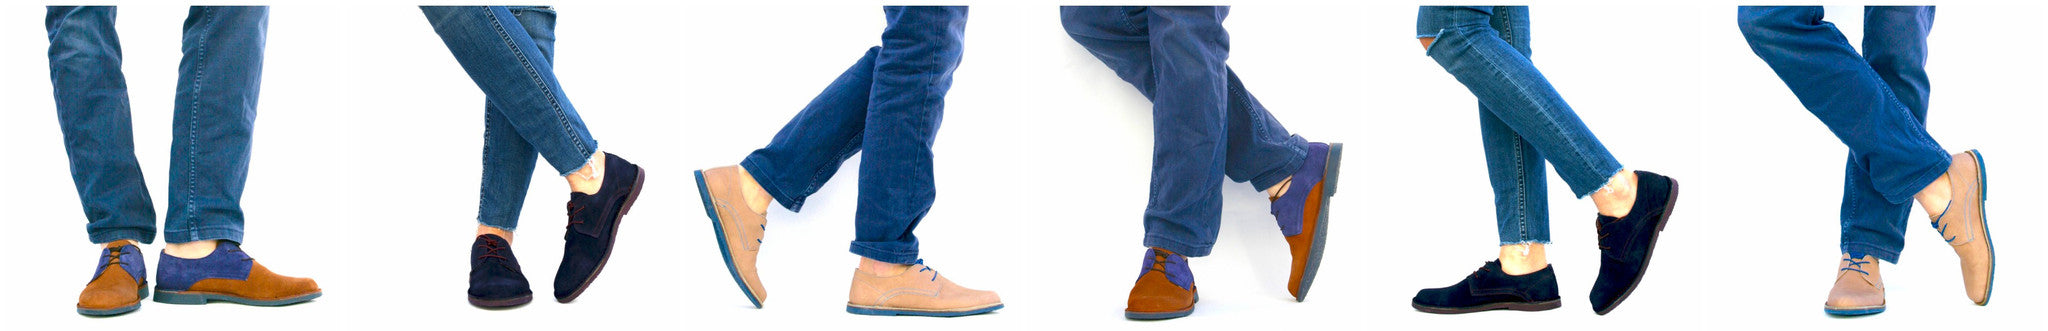 mens oxford shoes lifestyle photos